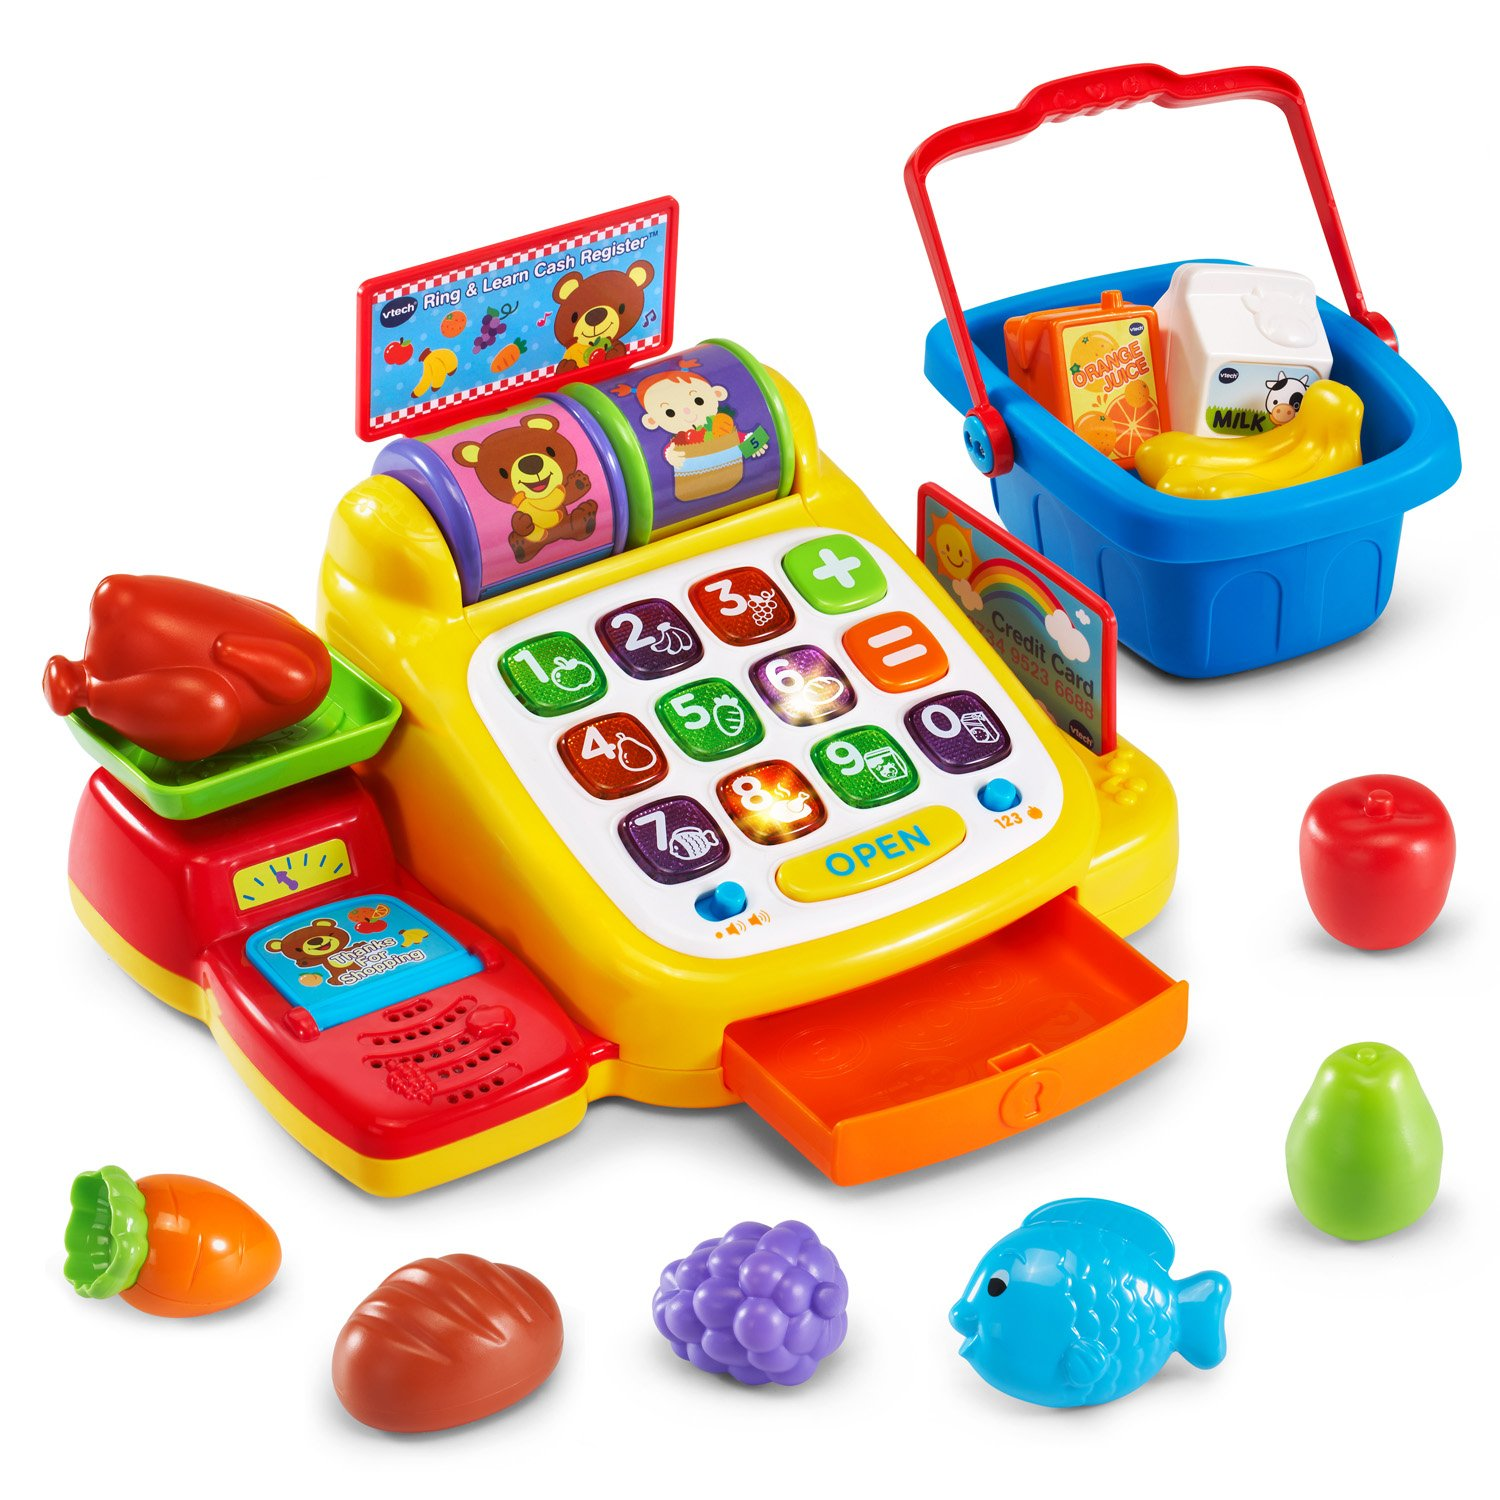 Top 10 Best Kids Cash Register Toys Reviews in 2021 11